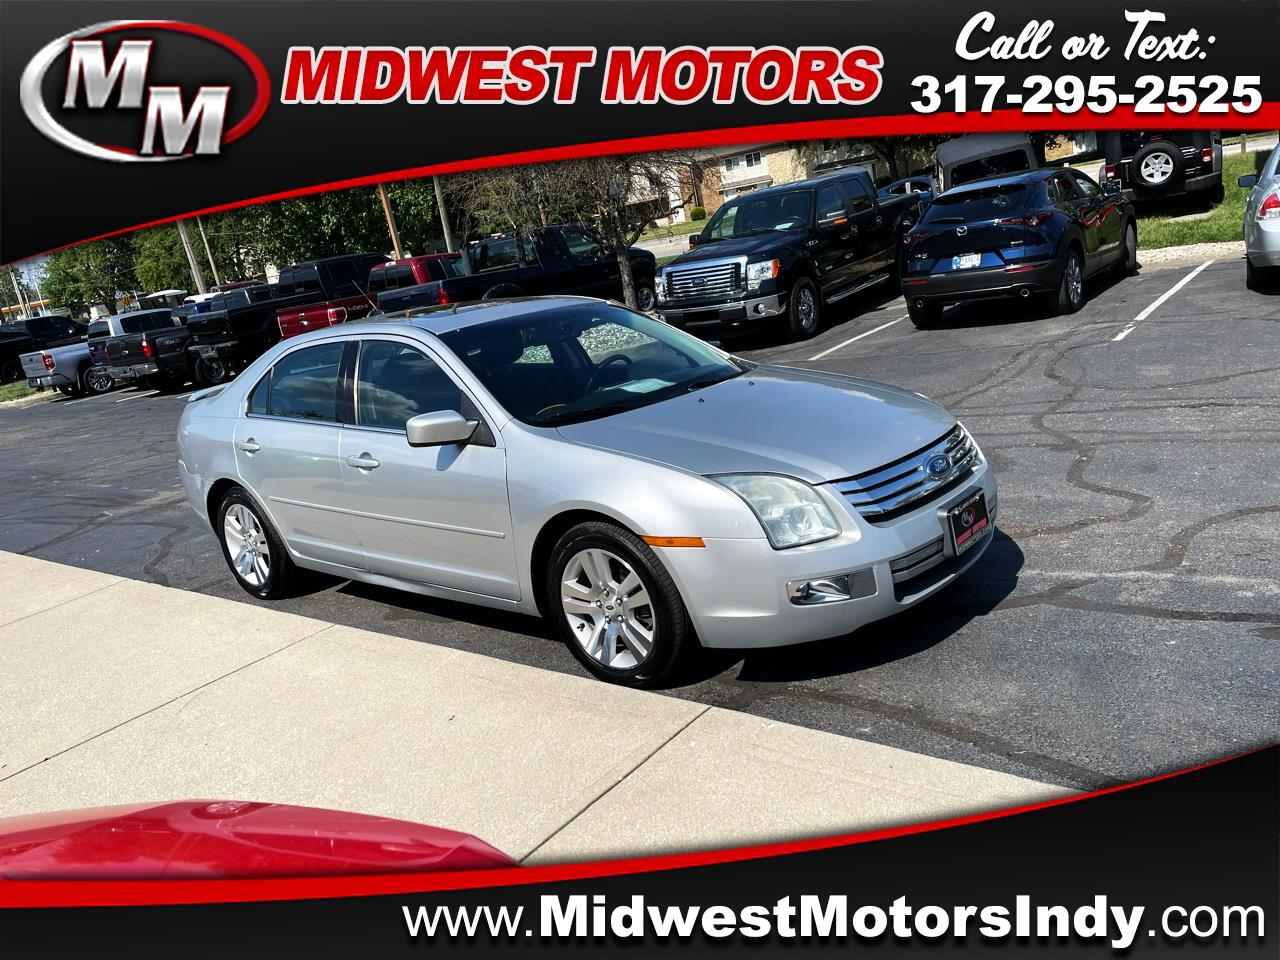 Ford Fusion 4dr Sdn V6 SEL FWD 2009